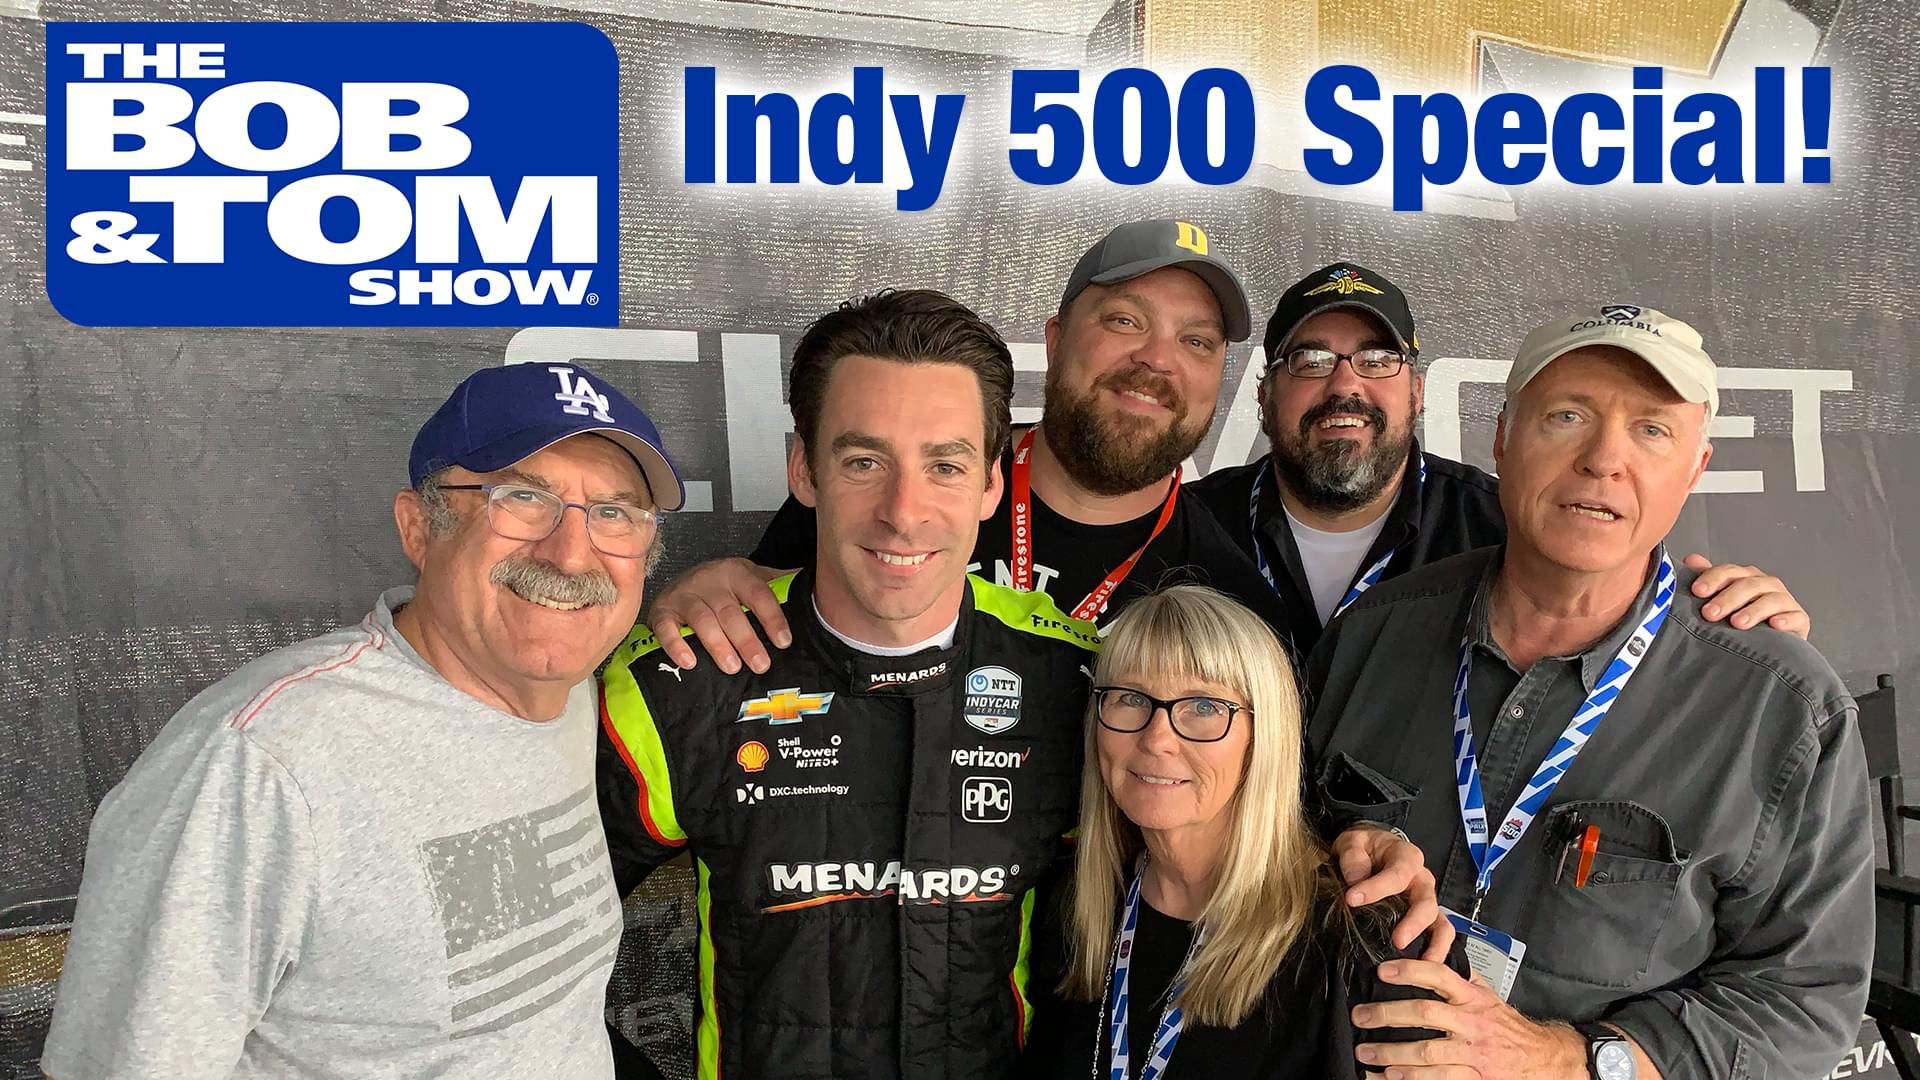 Our Indy 500 Special!